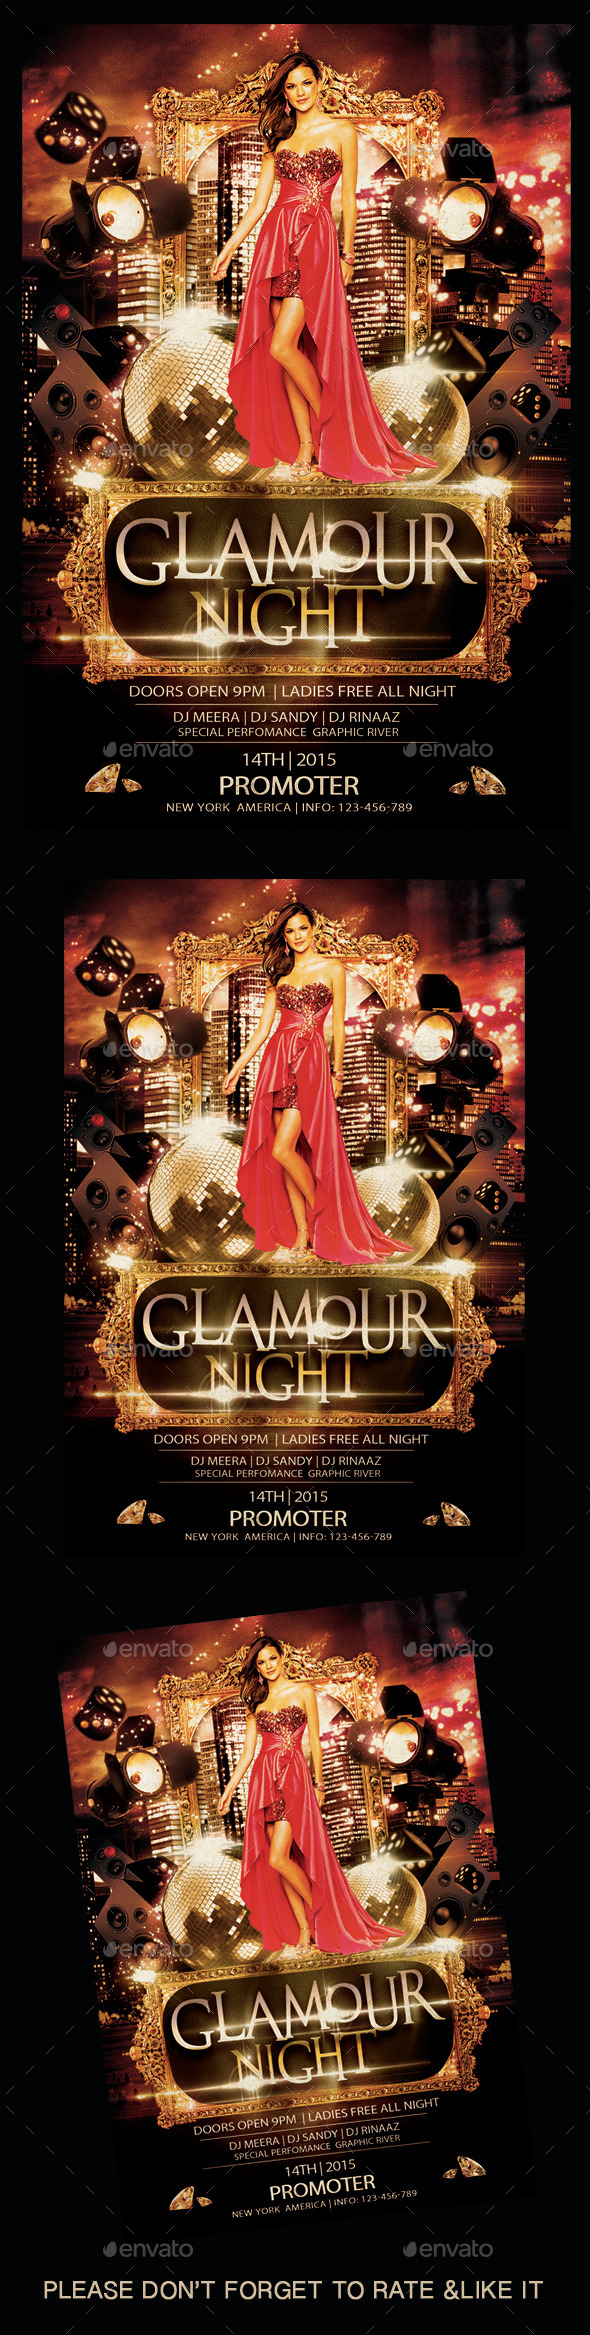 Glamour Night Flyer - Flyers Print Templates